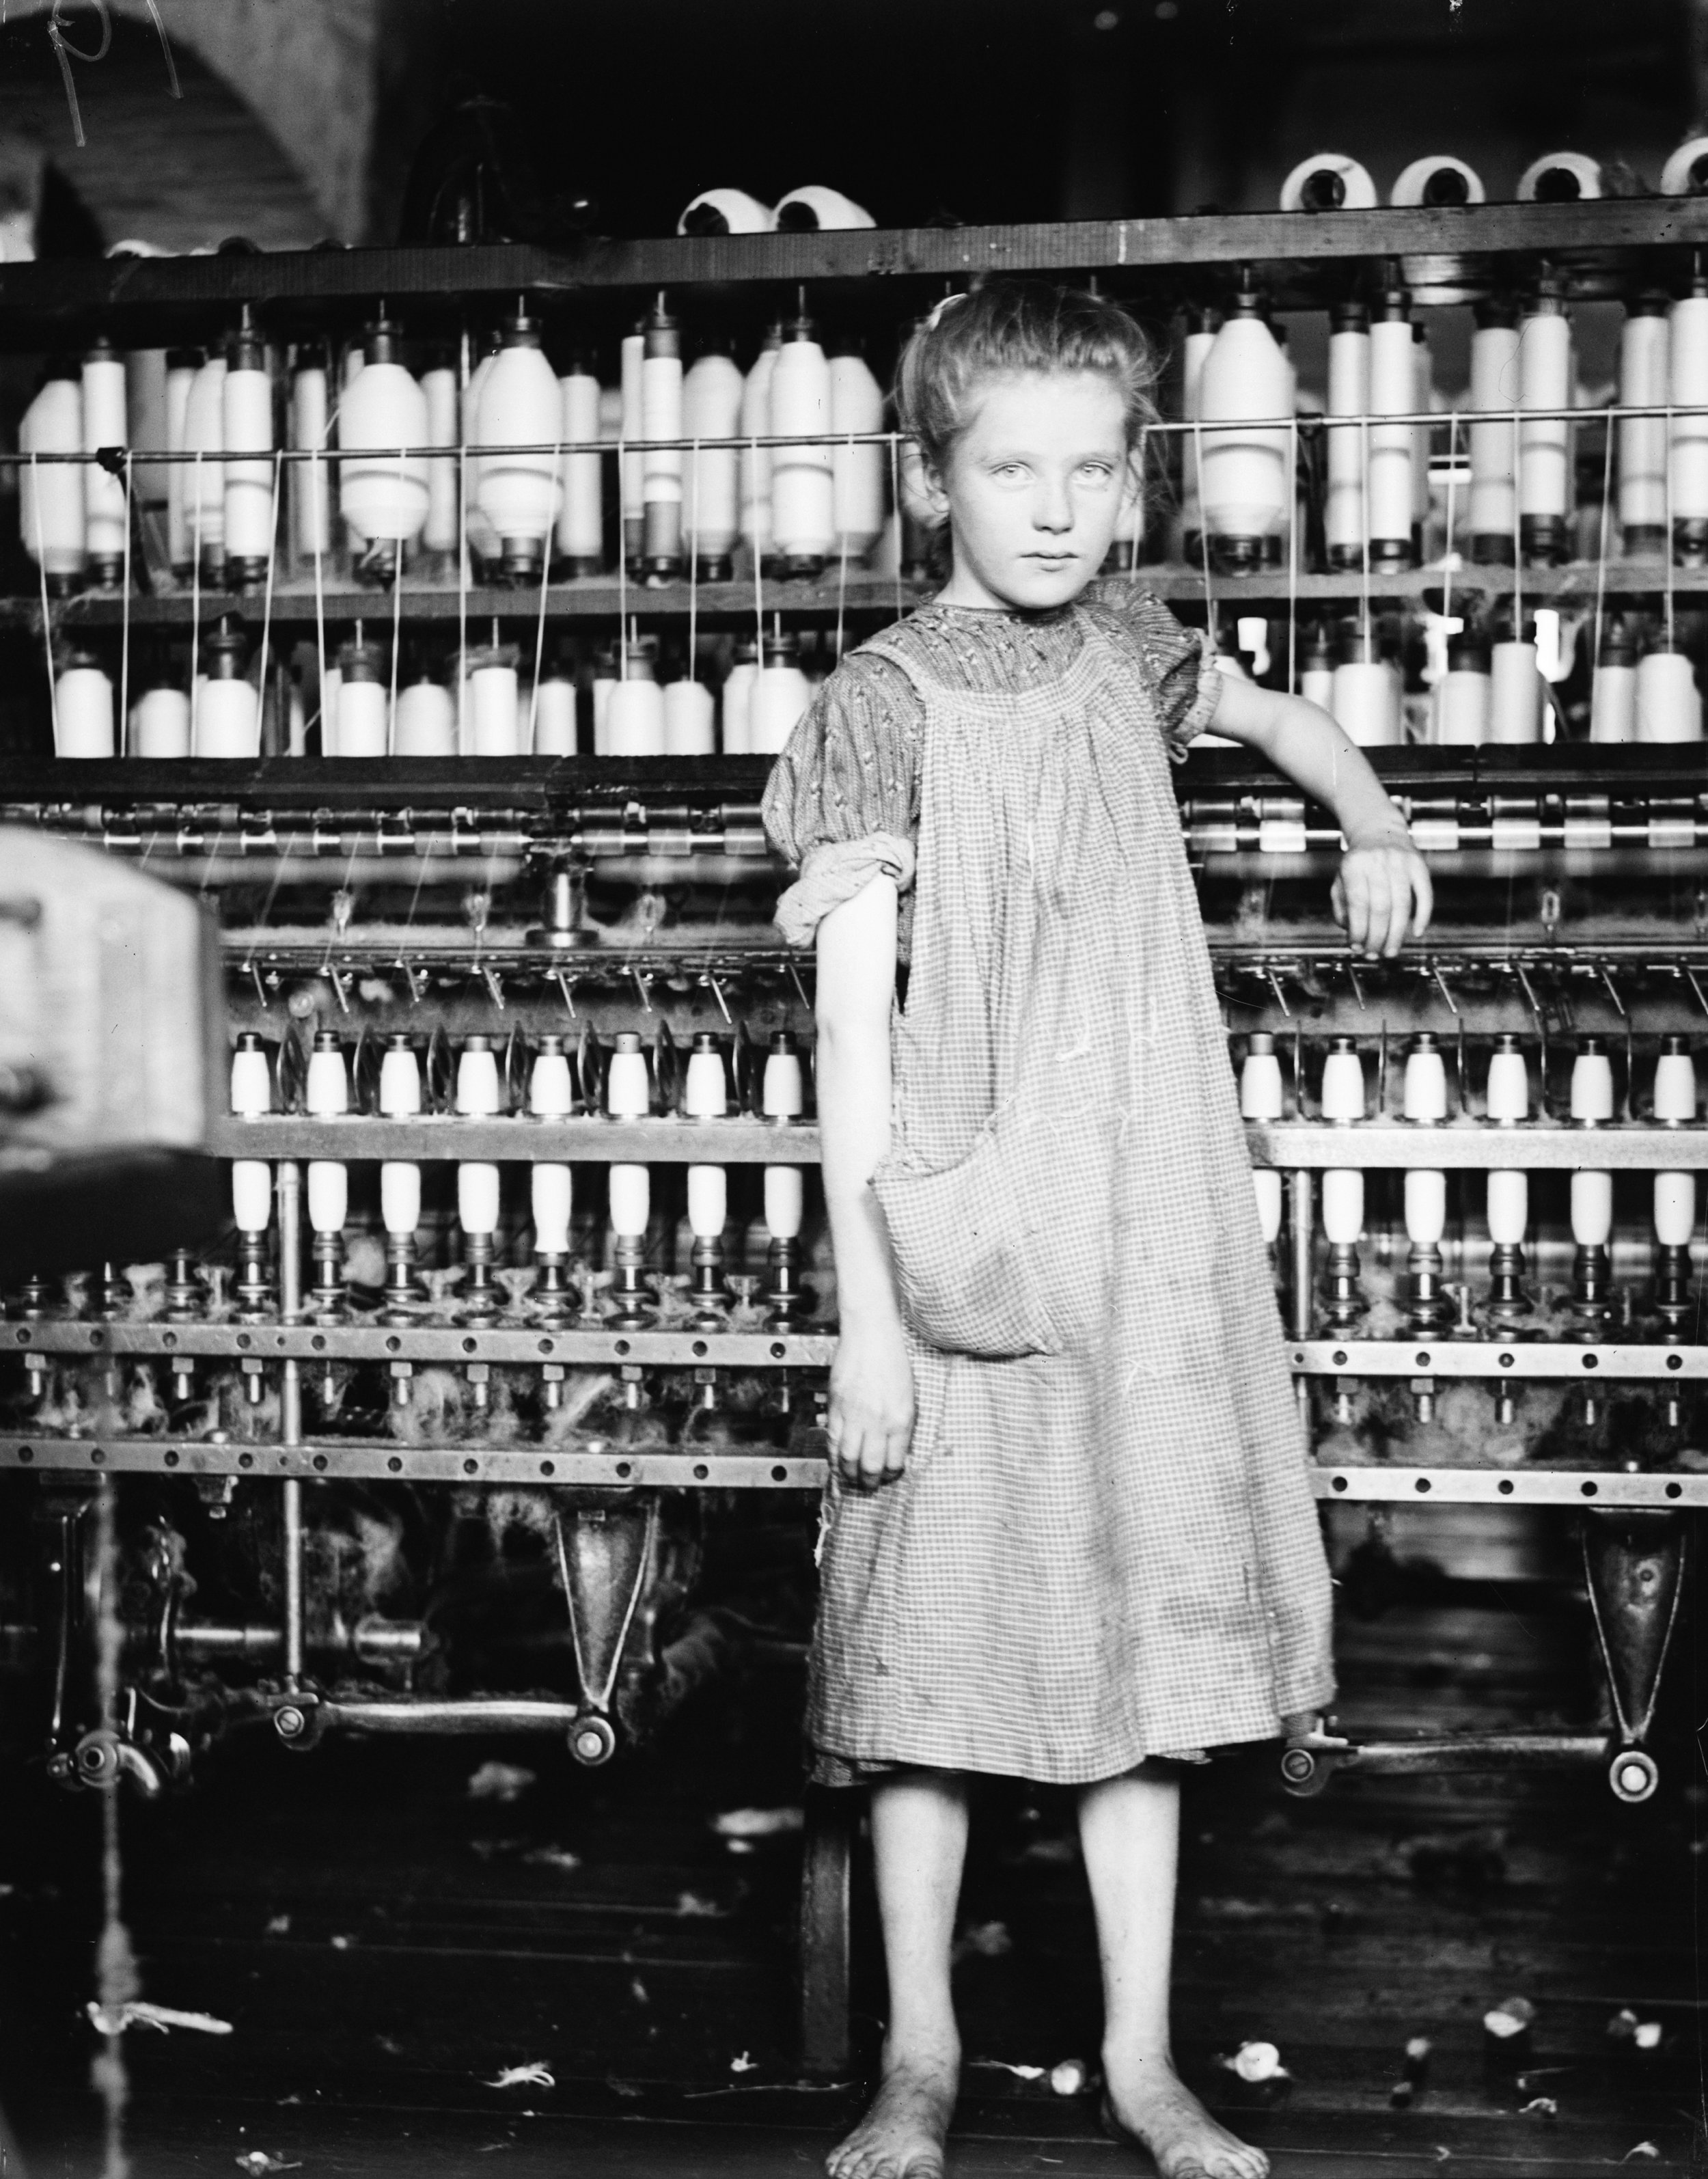 Photo from the era of child labor ( https://en.wikipedia.org/wiki/Child_labor_laws_in_the_United_States )